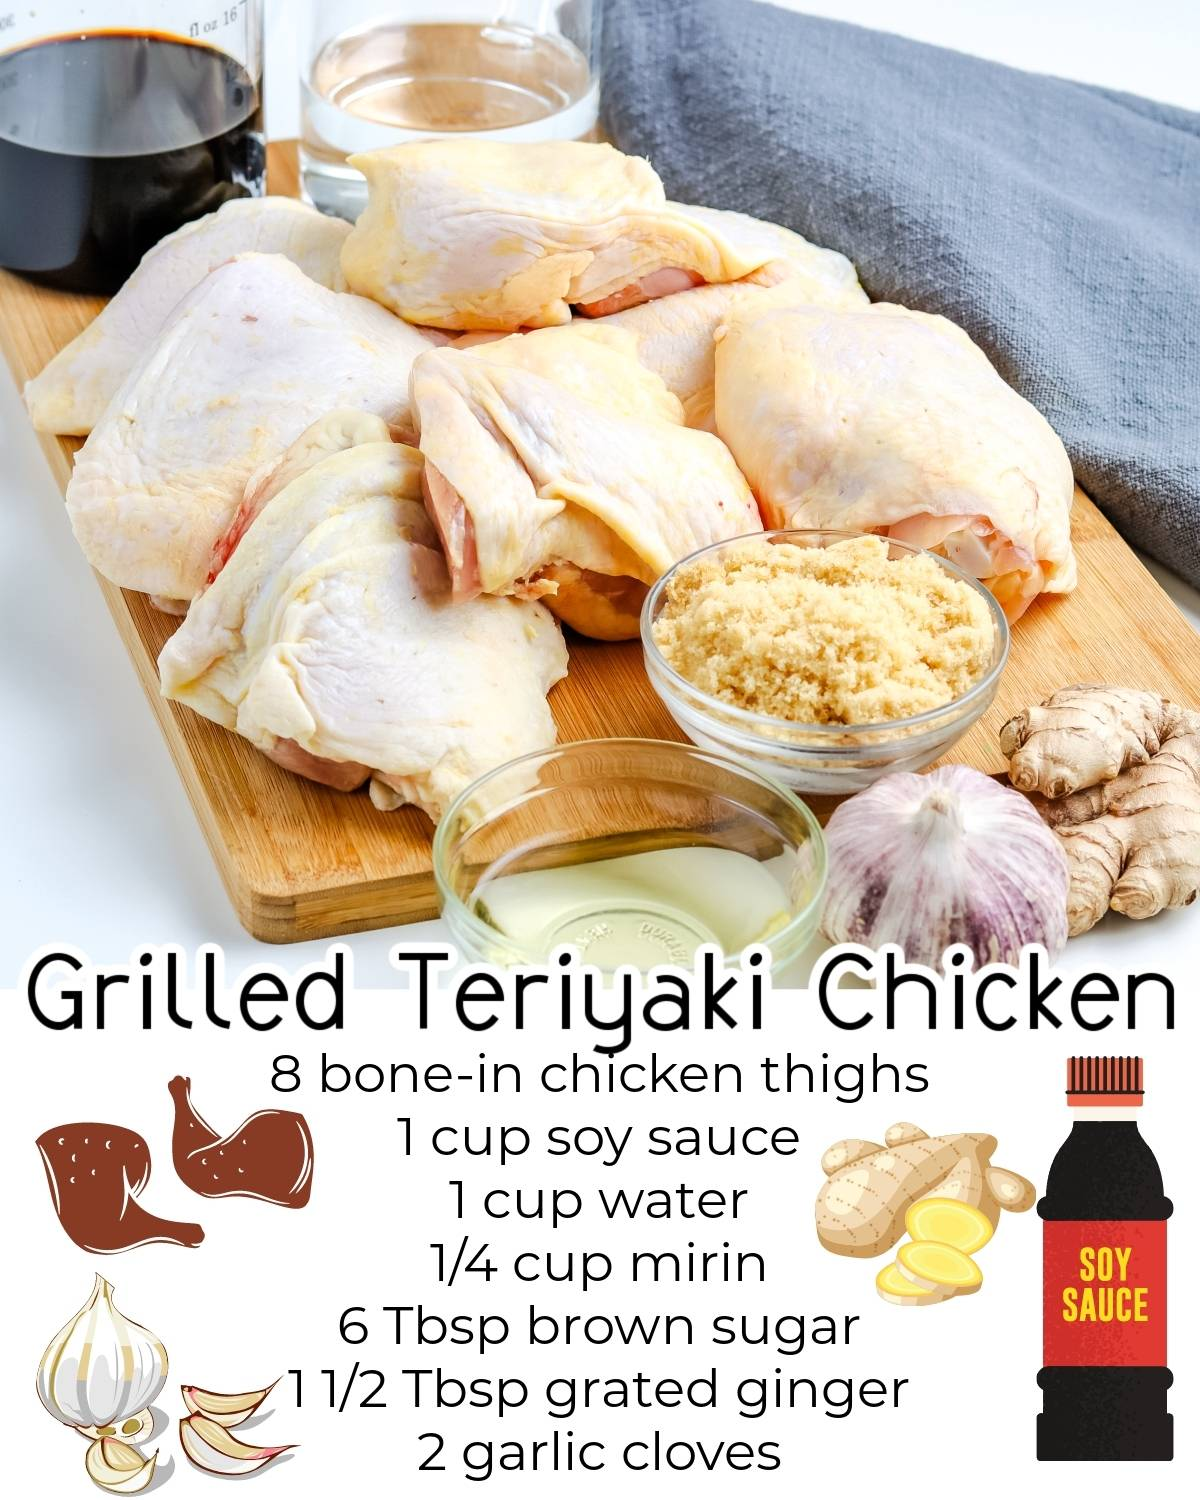 All of the ingredients needed to make this Grilled Teriyaki Chicken Thighs recipe.